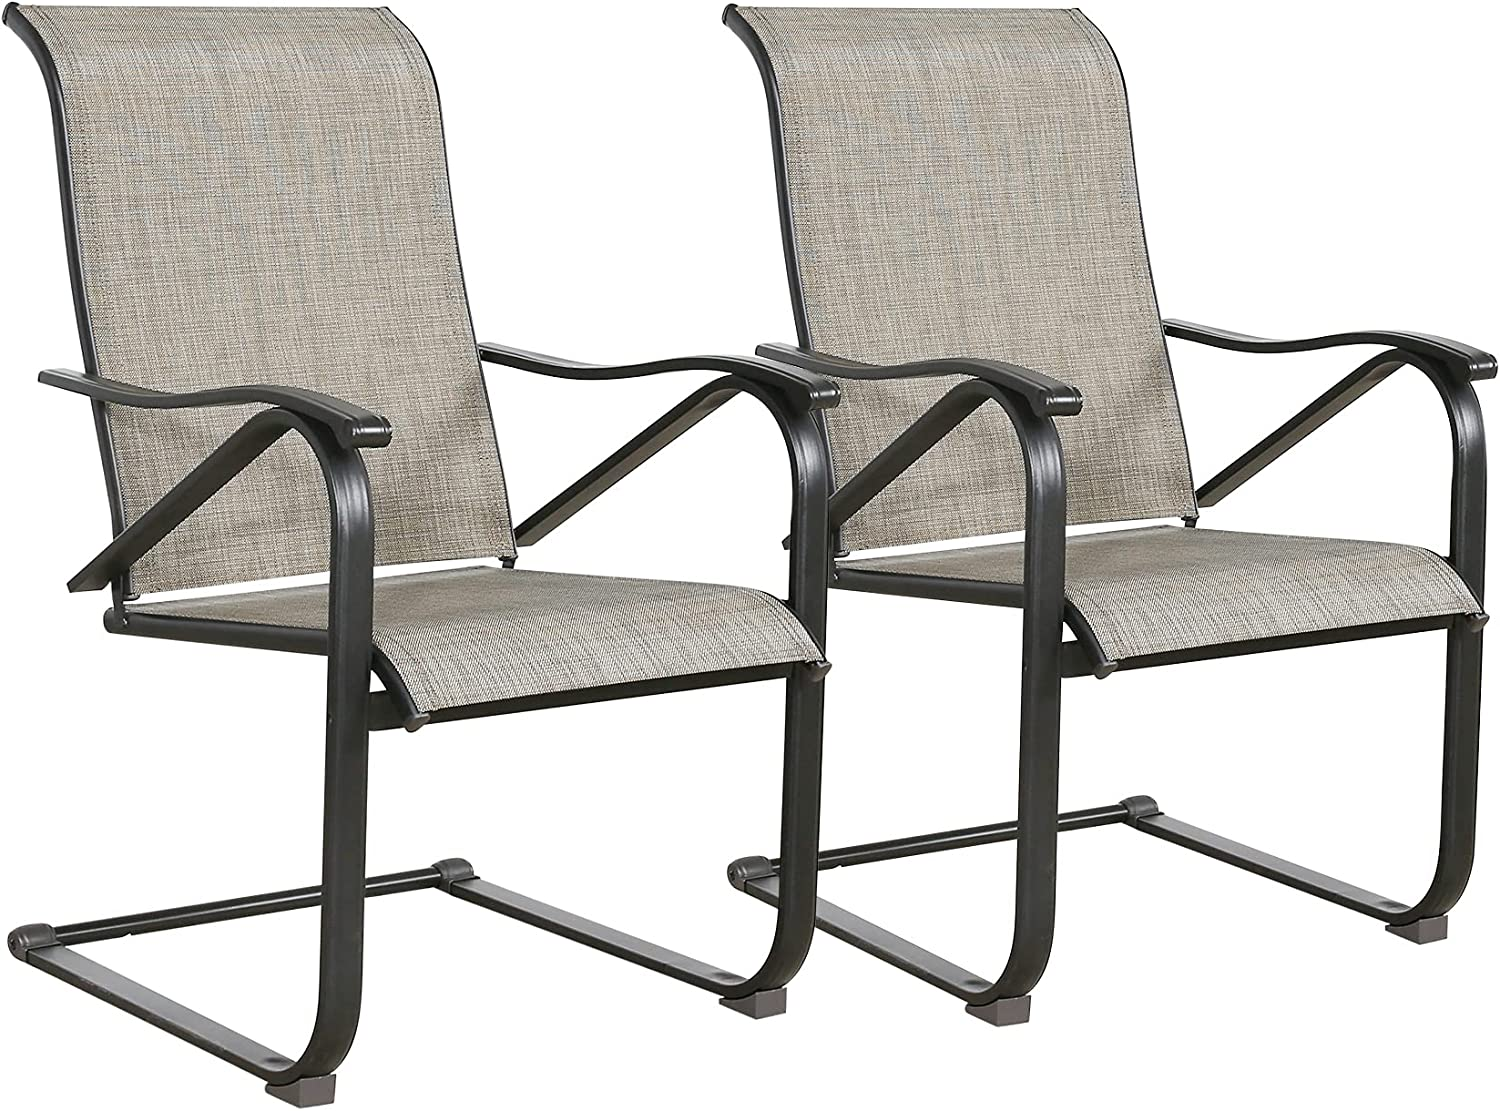 Ulax Furniture Arlington Mall Outdoor Dining Chairs Patio Spring Sling In stock Mo Metal